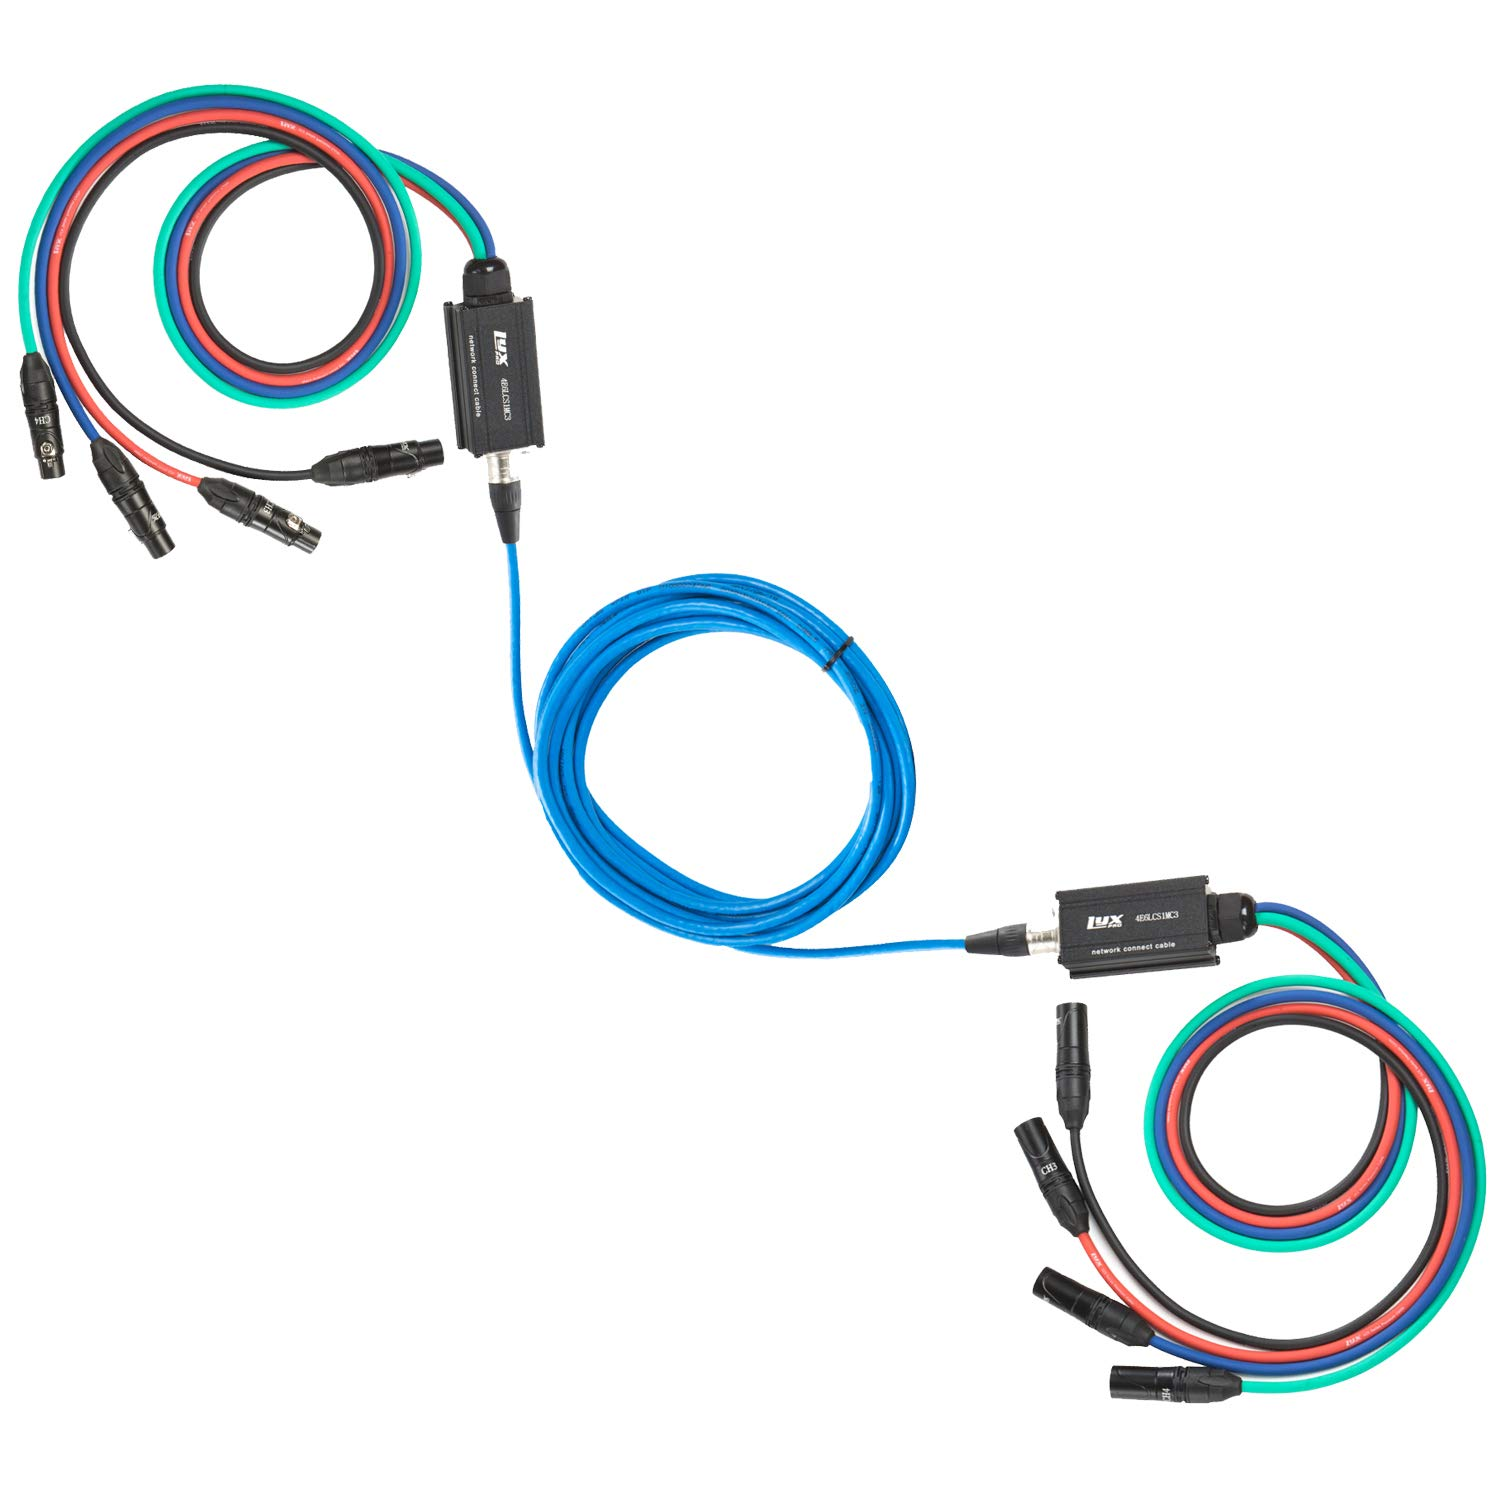 Lyxpro 4 Channel XLR Cable Snake AES & DMX - Connect 4-channle XLR to 30' Single Ethercon Cat6 Cable